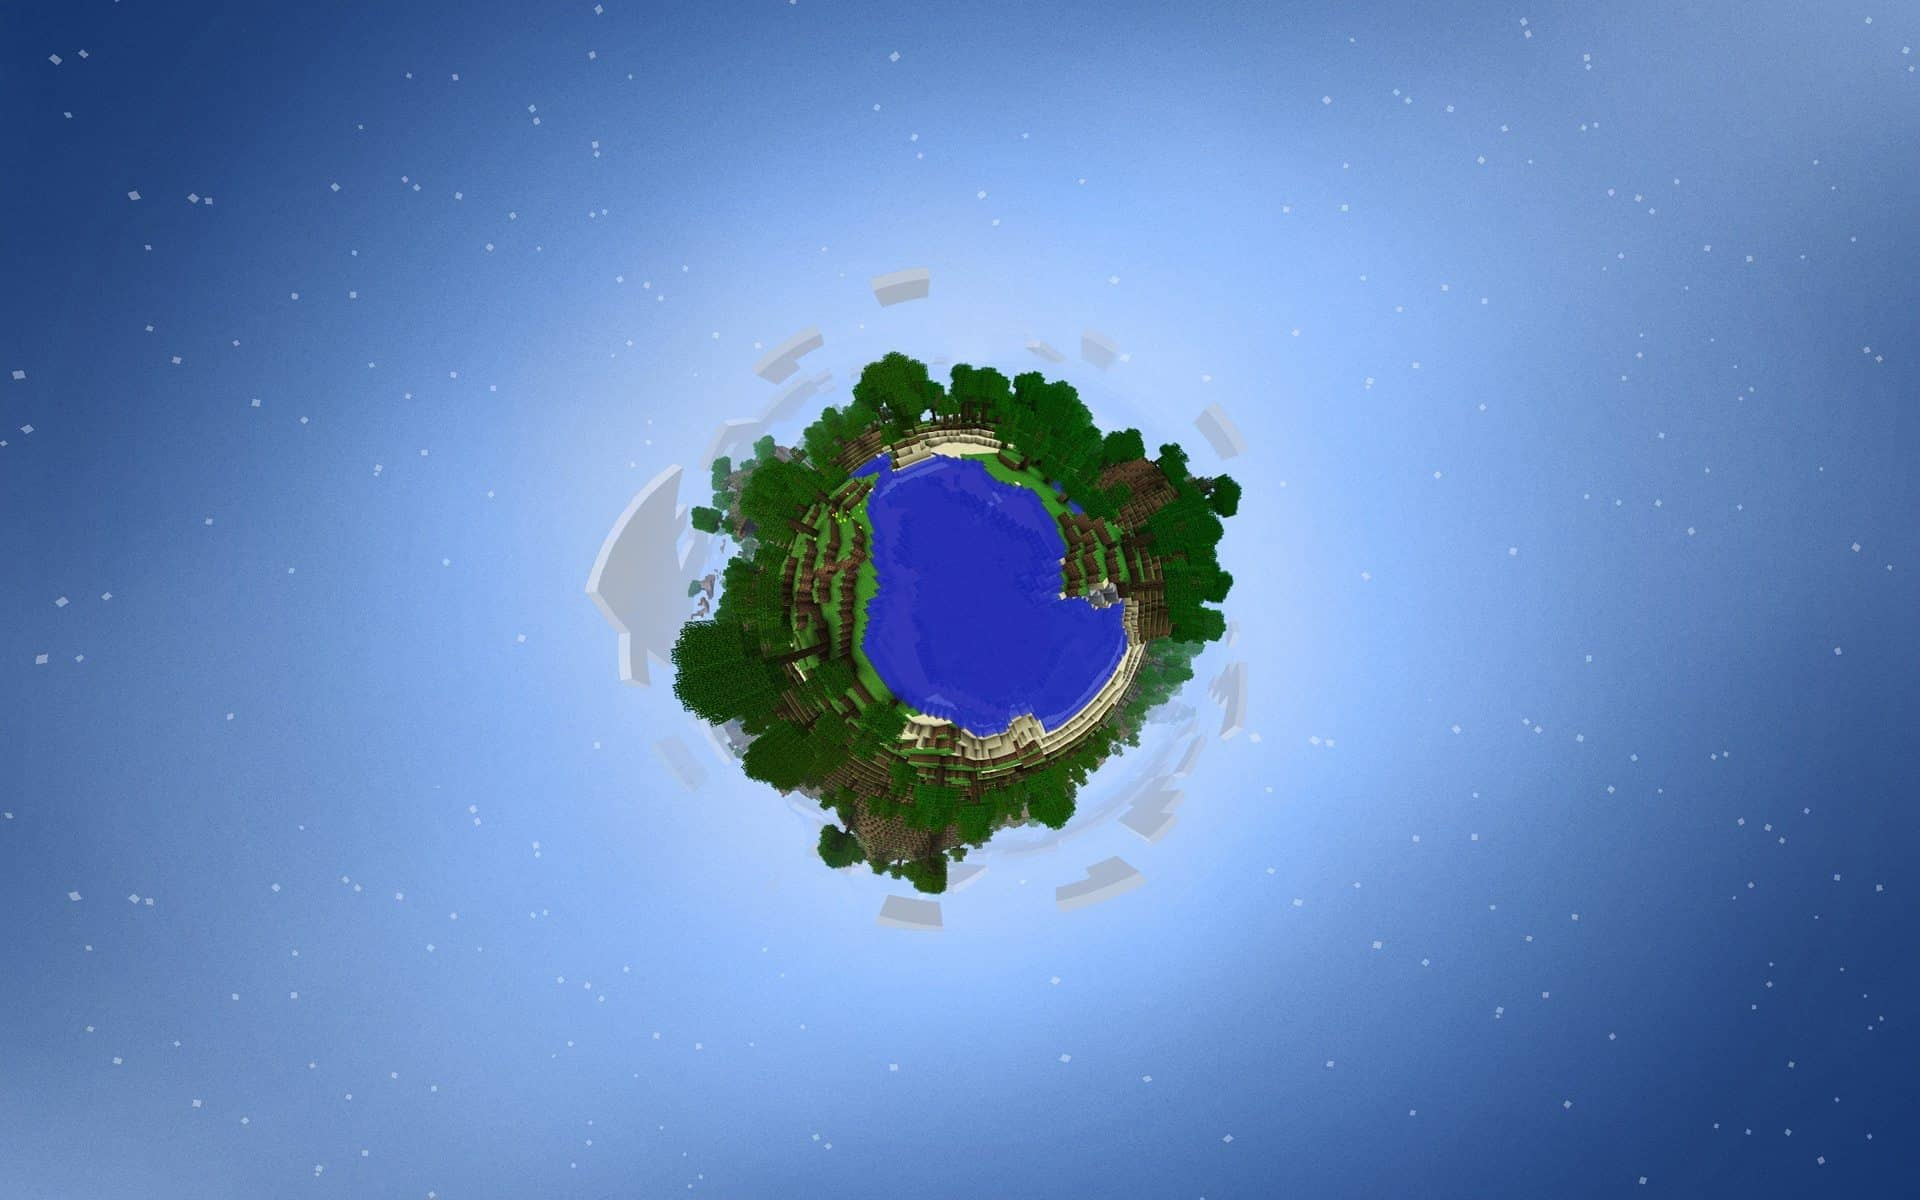 World Of Minecraft Original 2560x1600